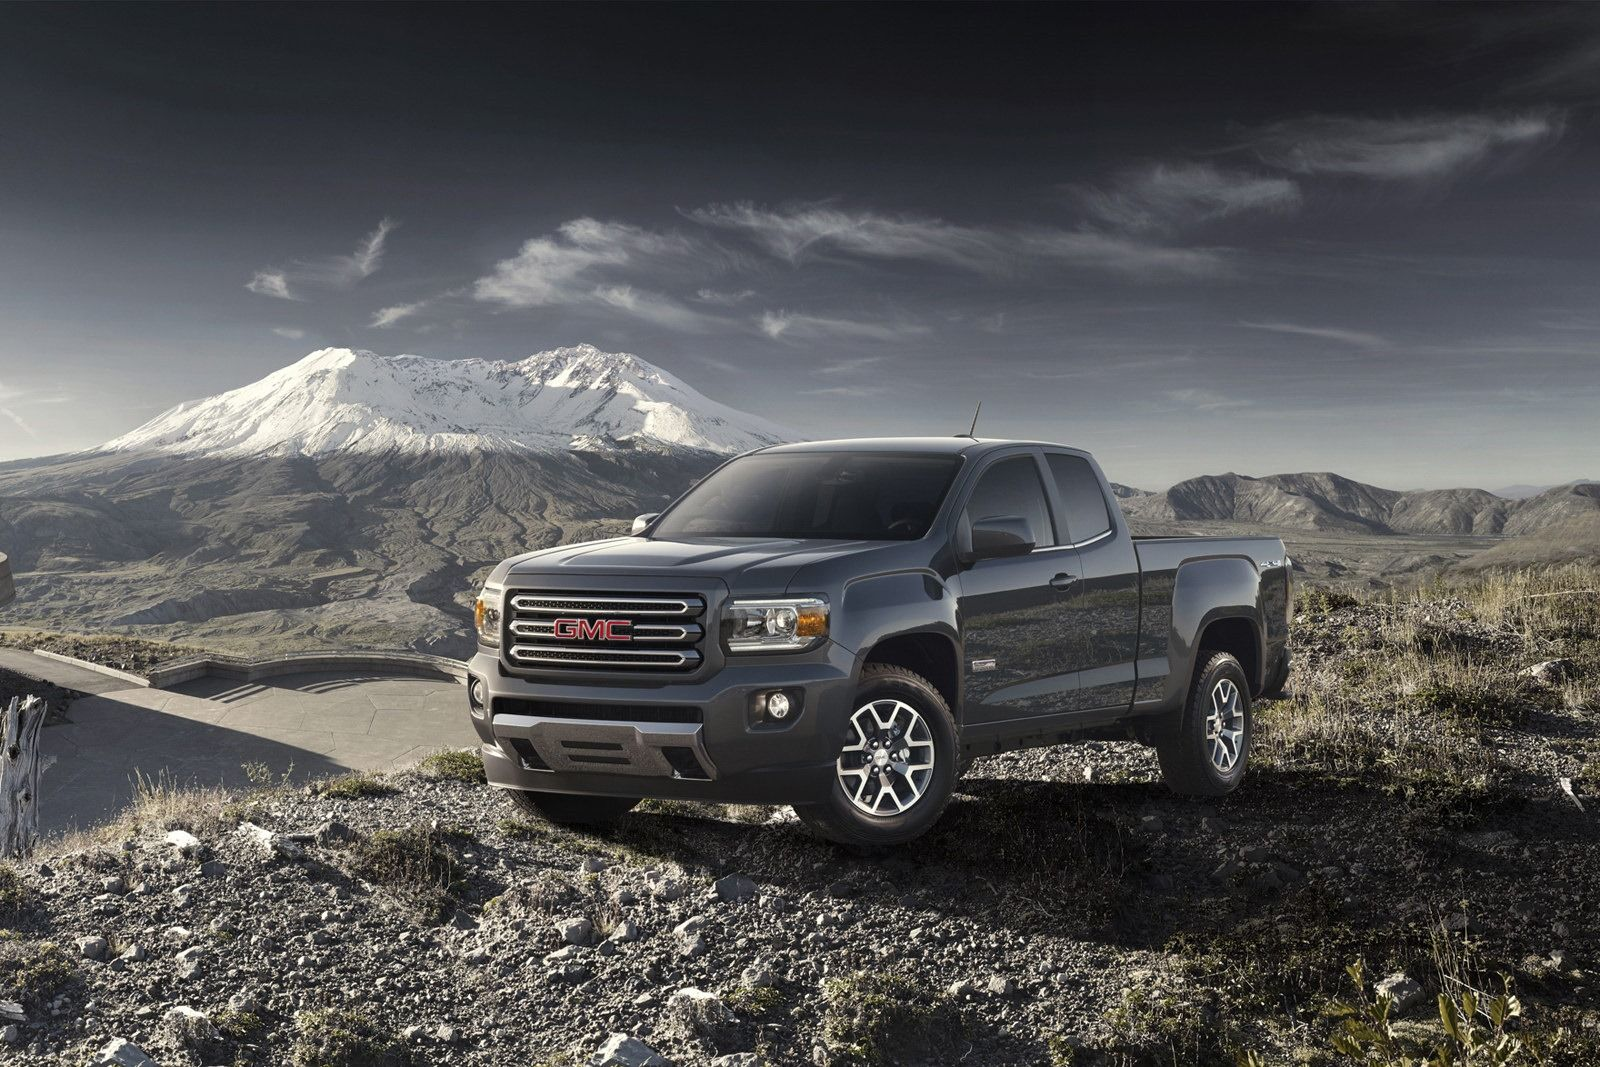 The 2015 Gmc Canyon Comes Equipped With Onstar 4g Lte Connectivity